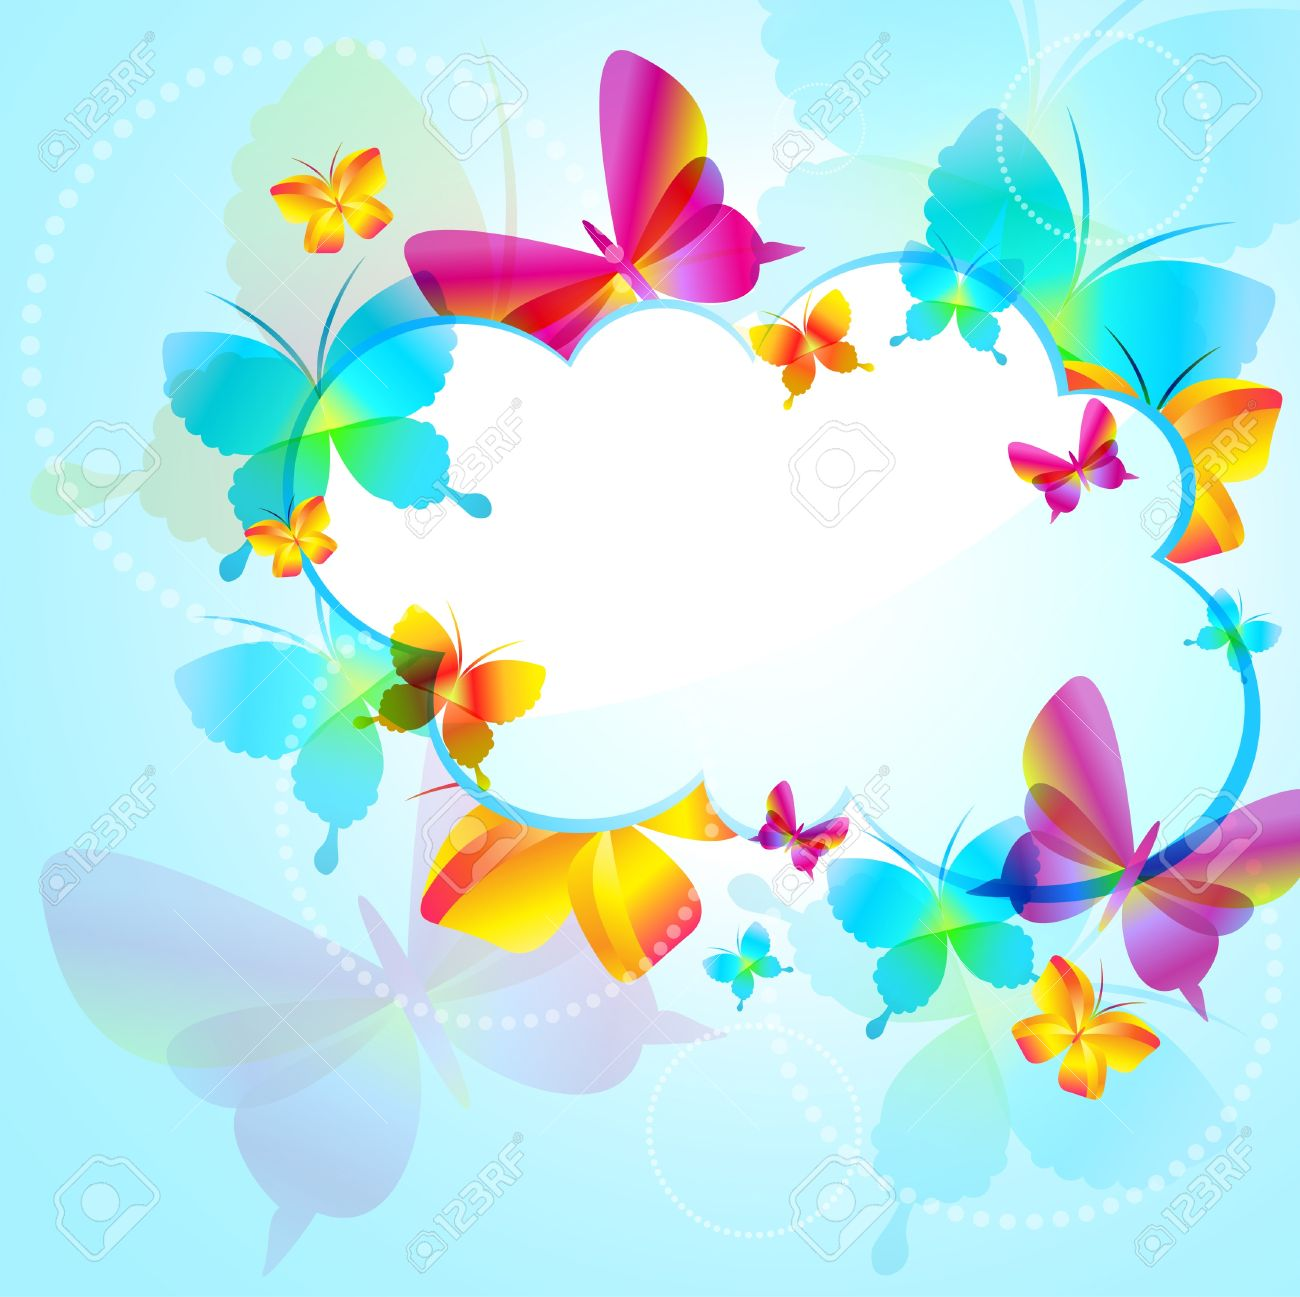 Free Bee And Butterfly Clipart Background Images.